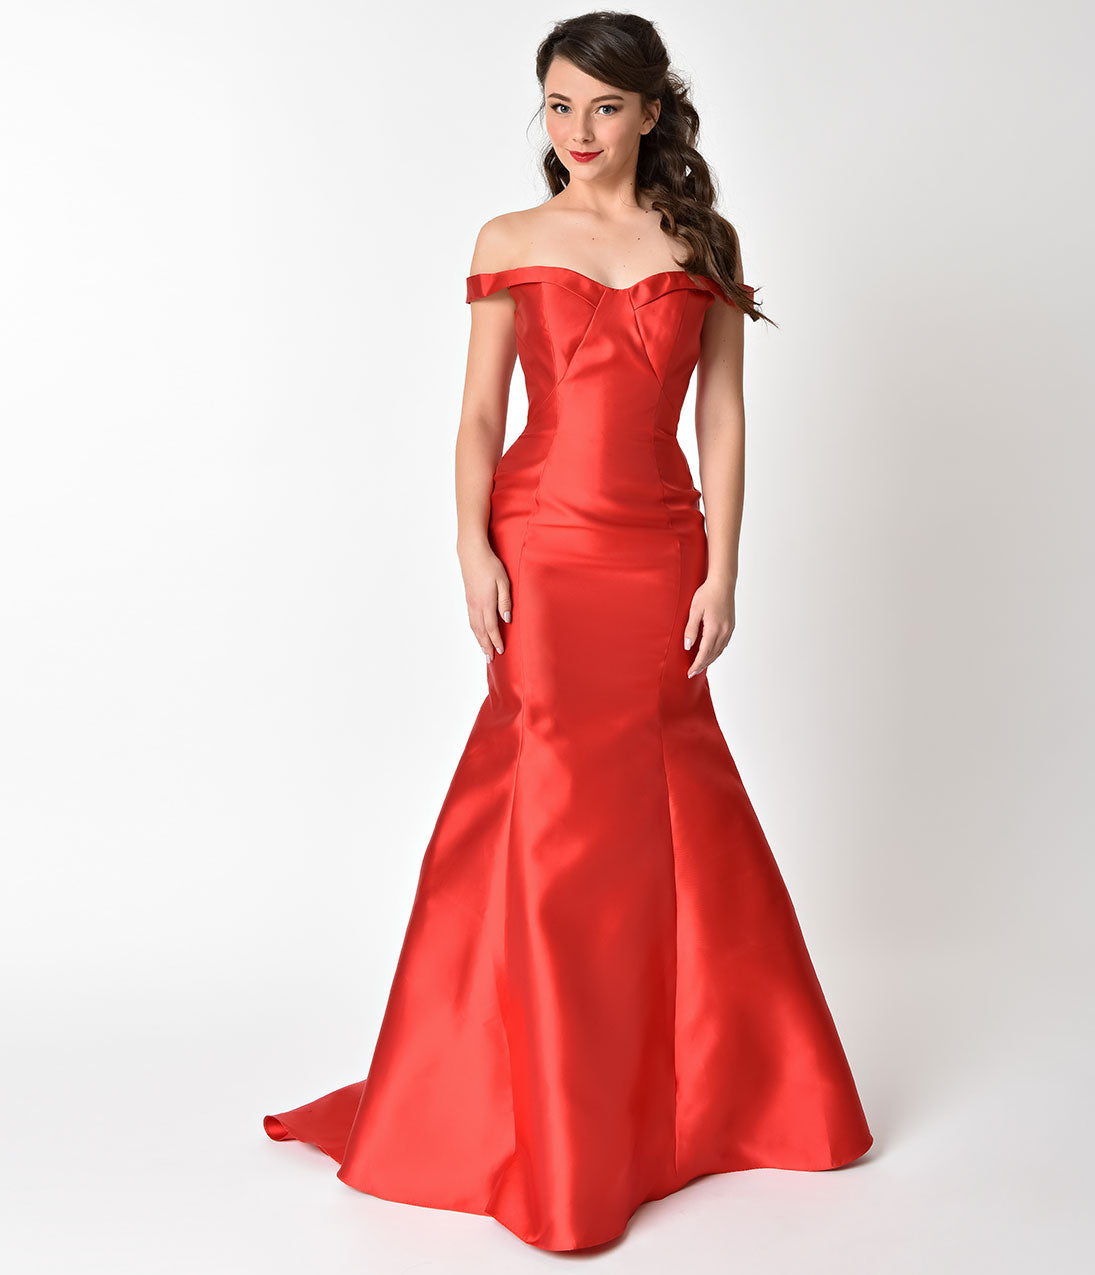 Vintage Evening Dresses and Formal Evening Gowns Luminous Red Mermaid Style Bateau Prom Gown $168.00 AT vintagedancer.com